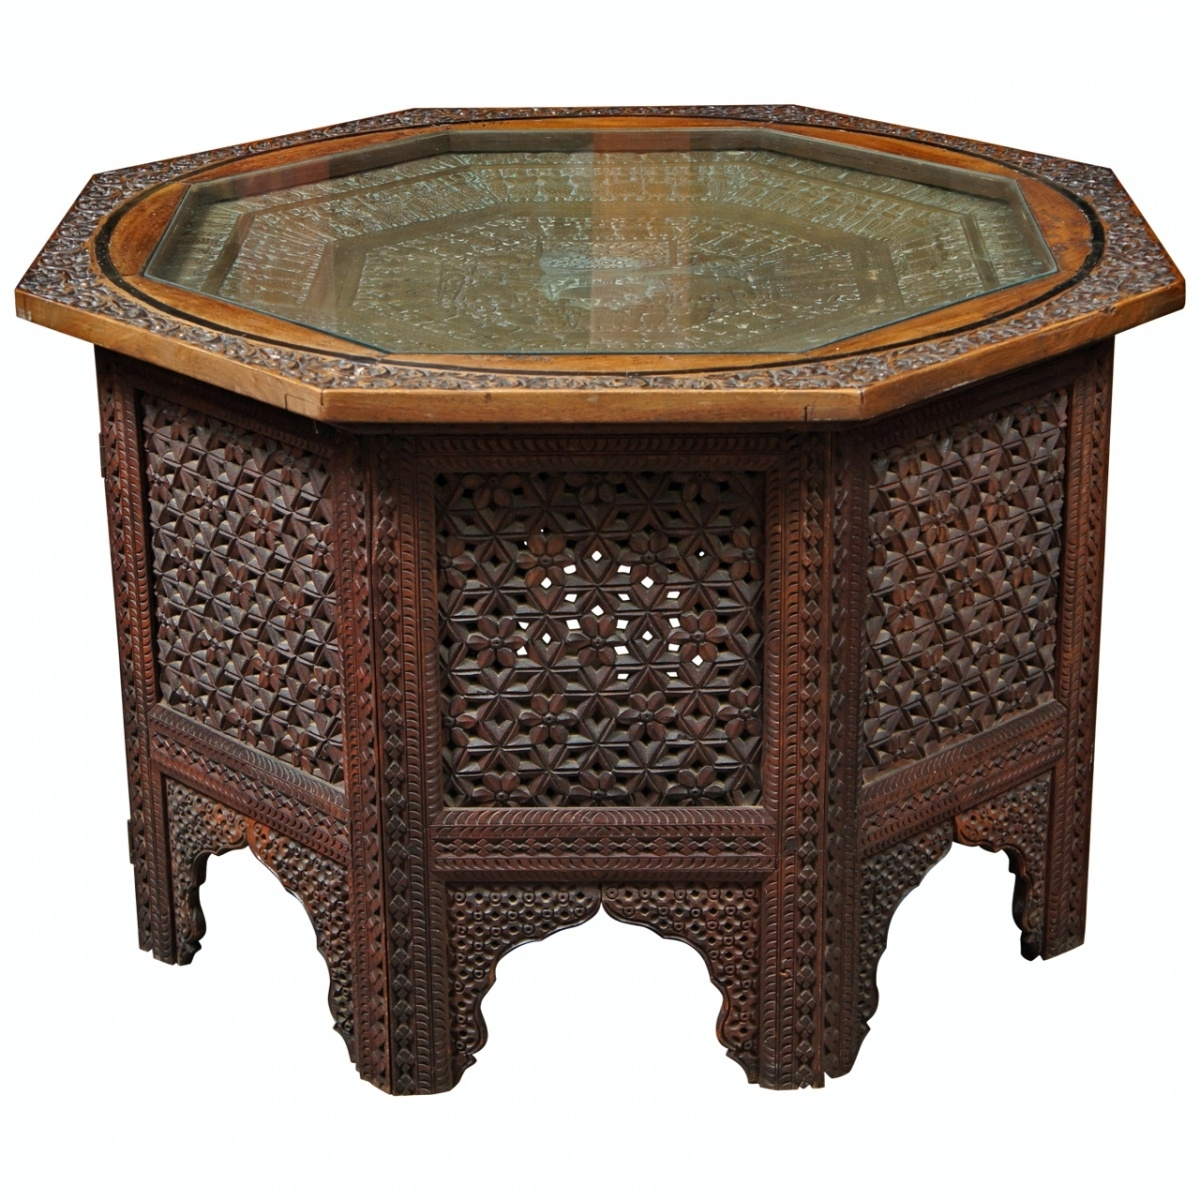 Best And Newest Round Carved Wood Coffee Tables Pertaining To Collection In Carved Wood Coffee Table With Wooden Coffee Tables (View 2 of 20)